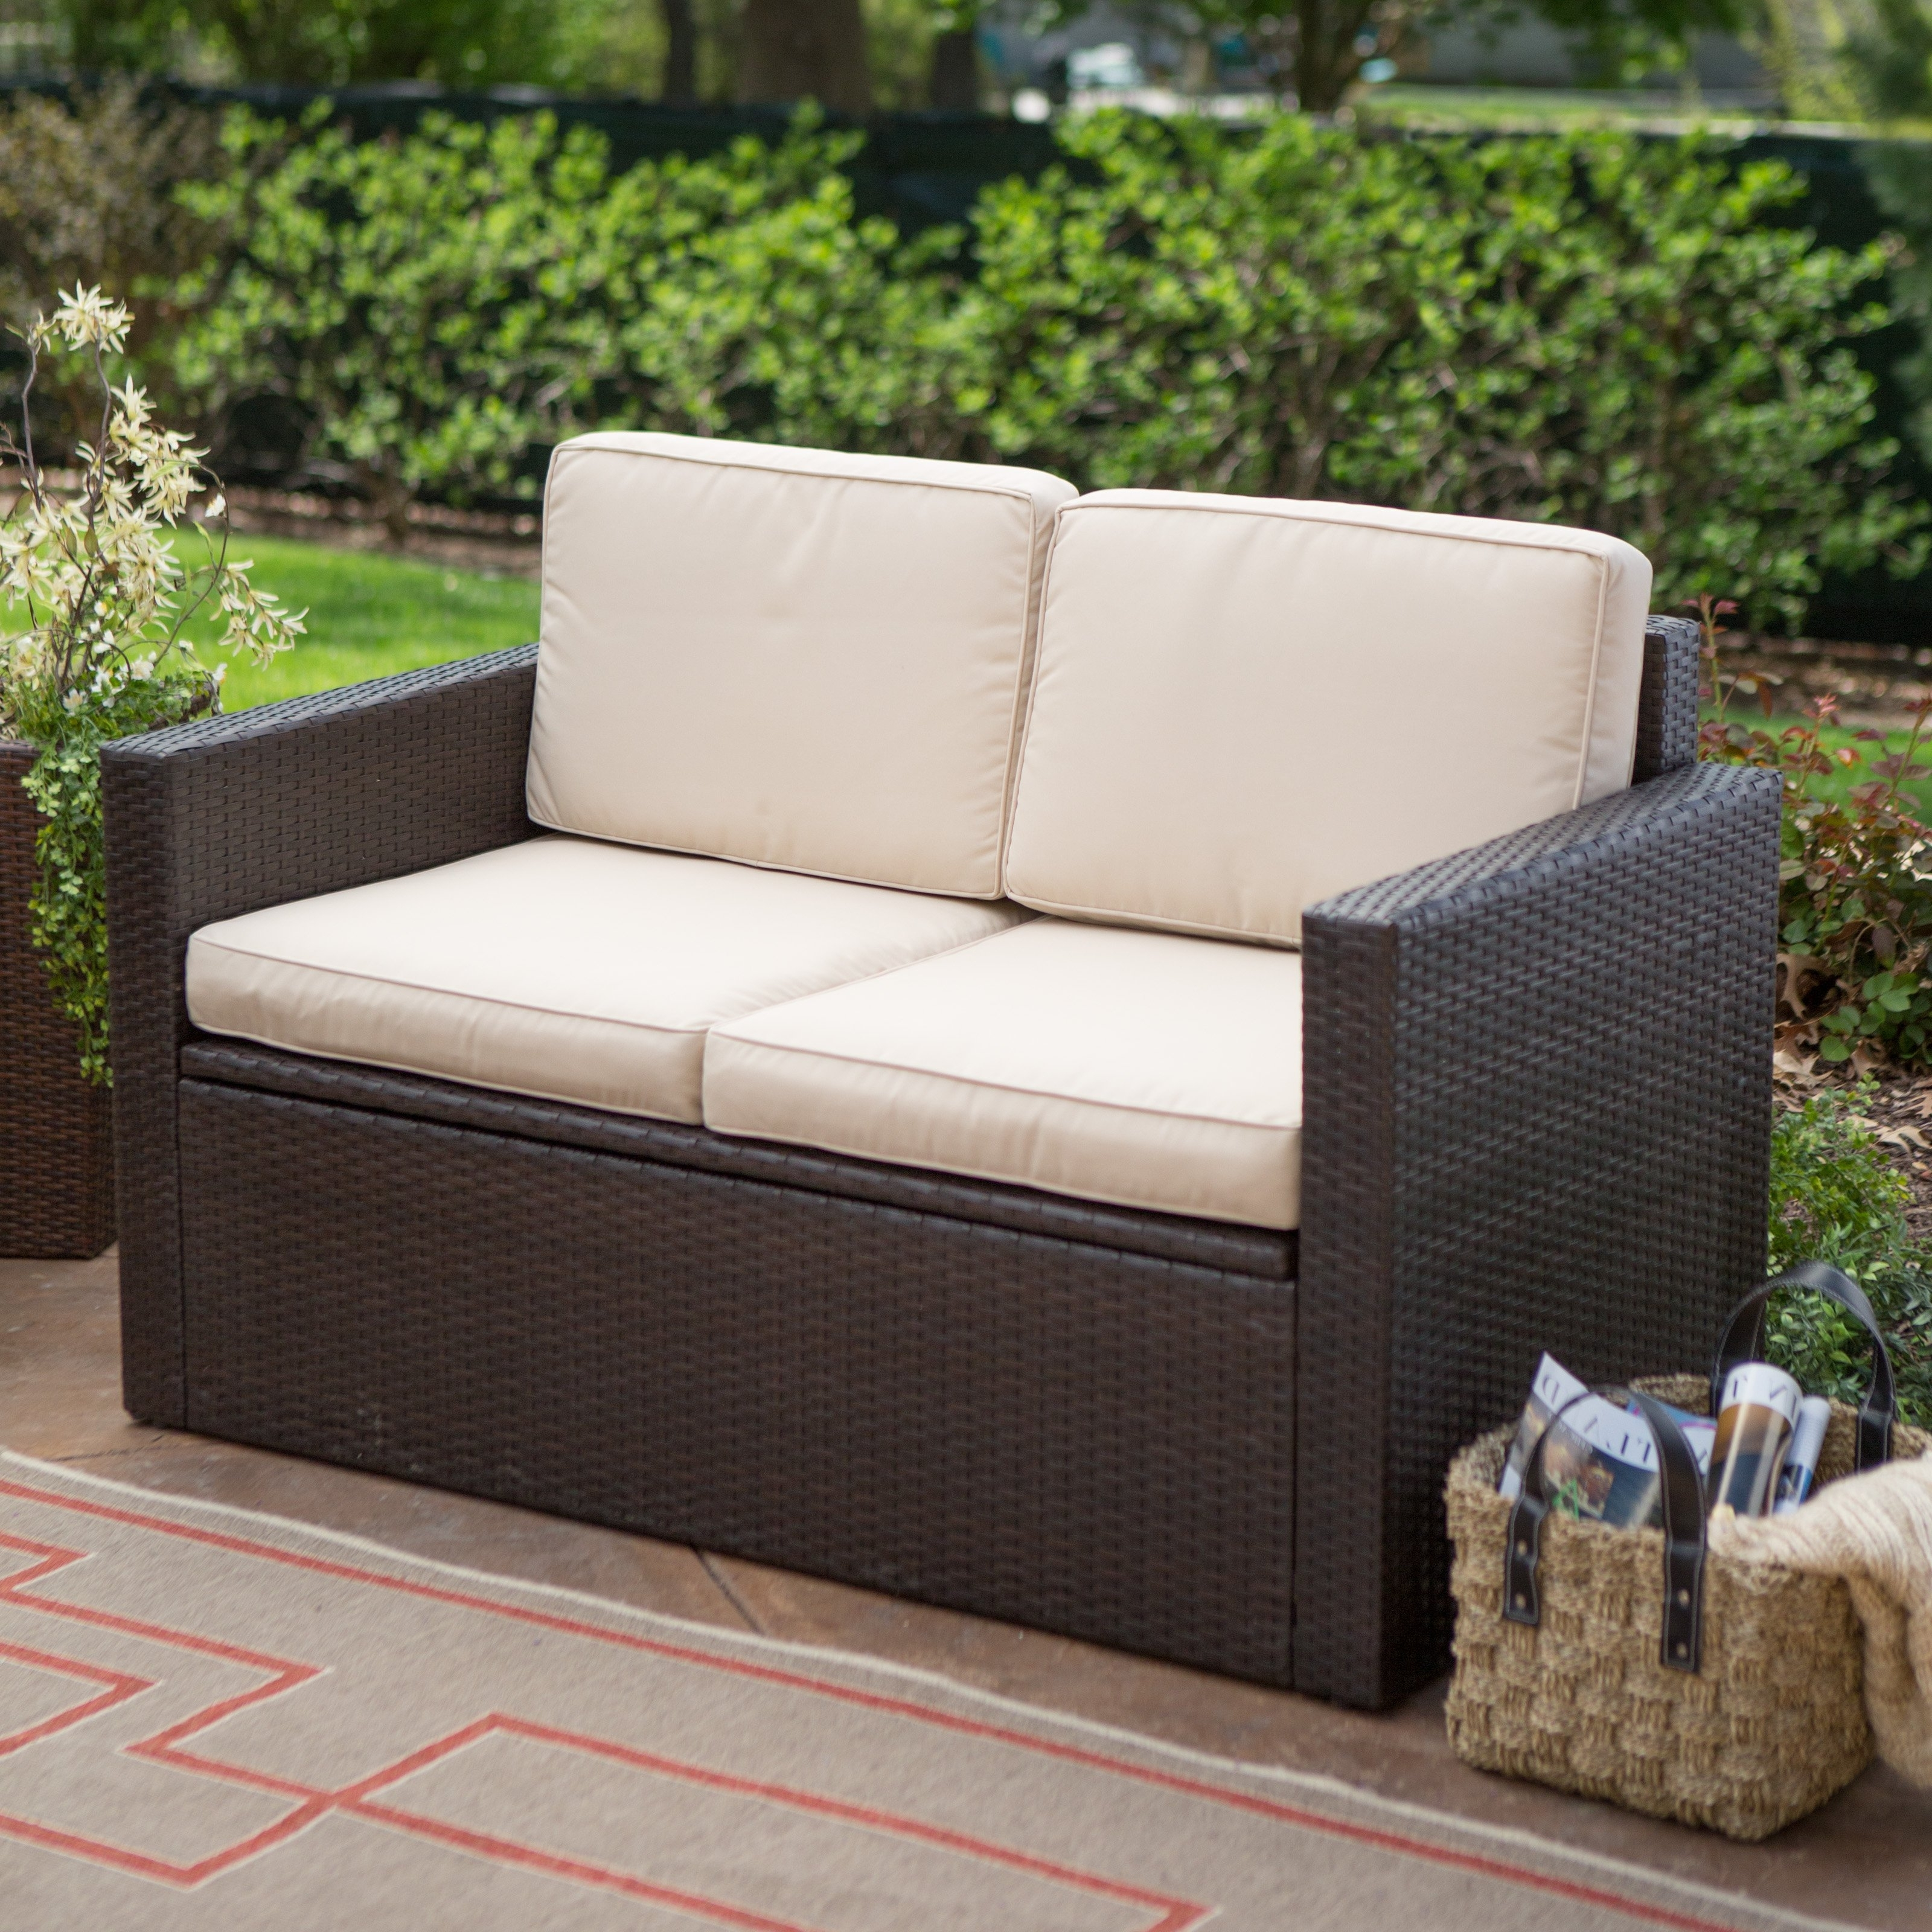 Patio Furniture Storage Elegant Coral Coast Berea Wicker 4 Piece Throughout Most Current Patio Conversation Set With Storage (View 12 of 20)